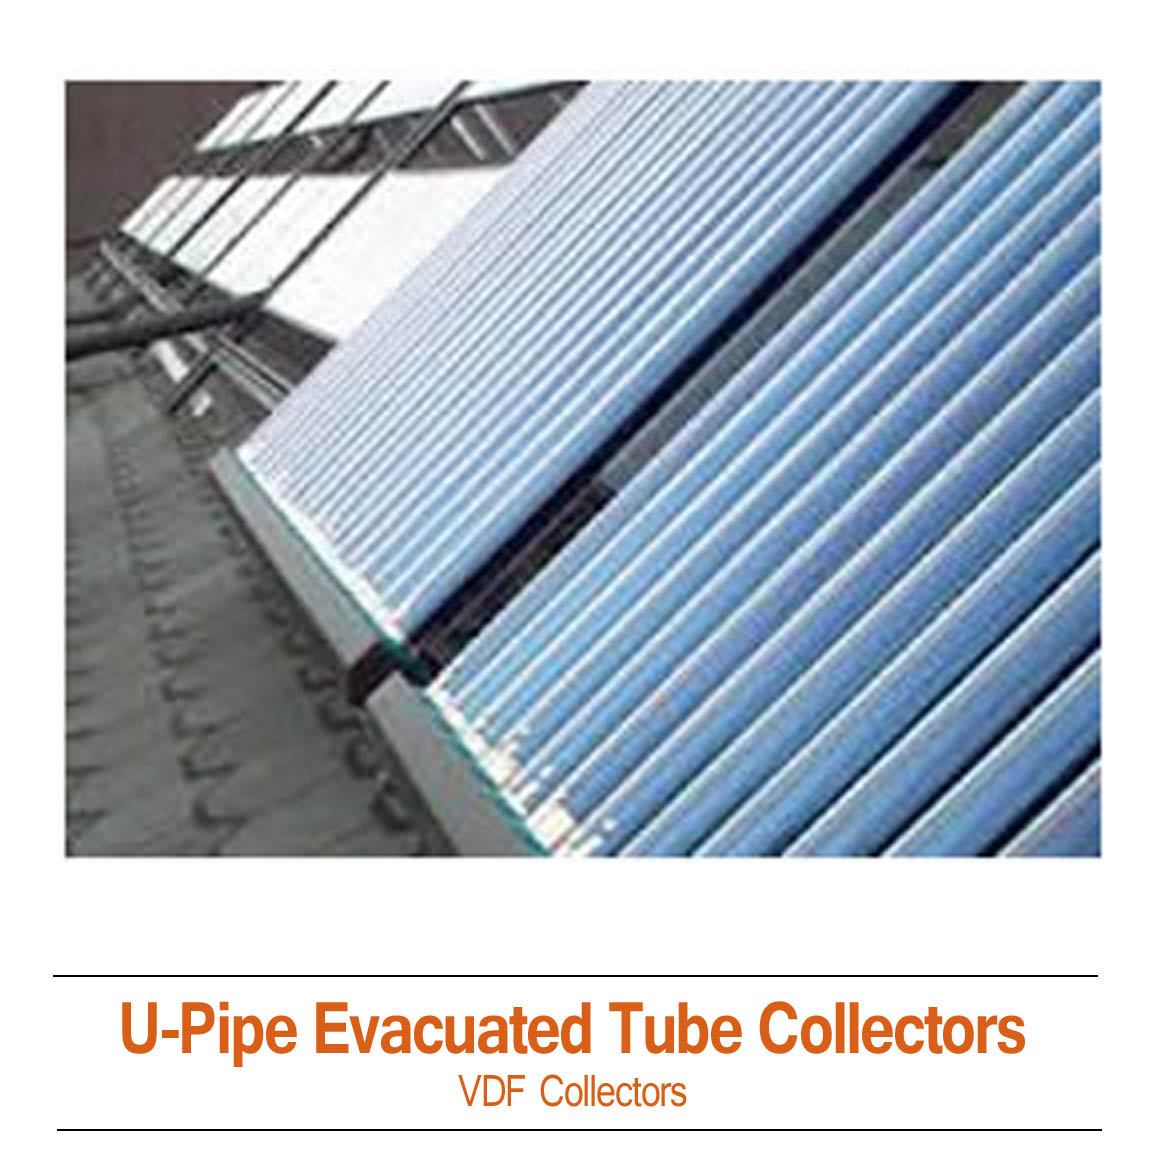 ThermoPower-VDF U-Pipe Direct Flow Evacuated Tube Solar Collectors